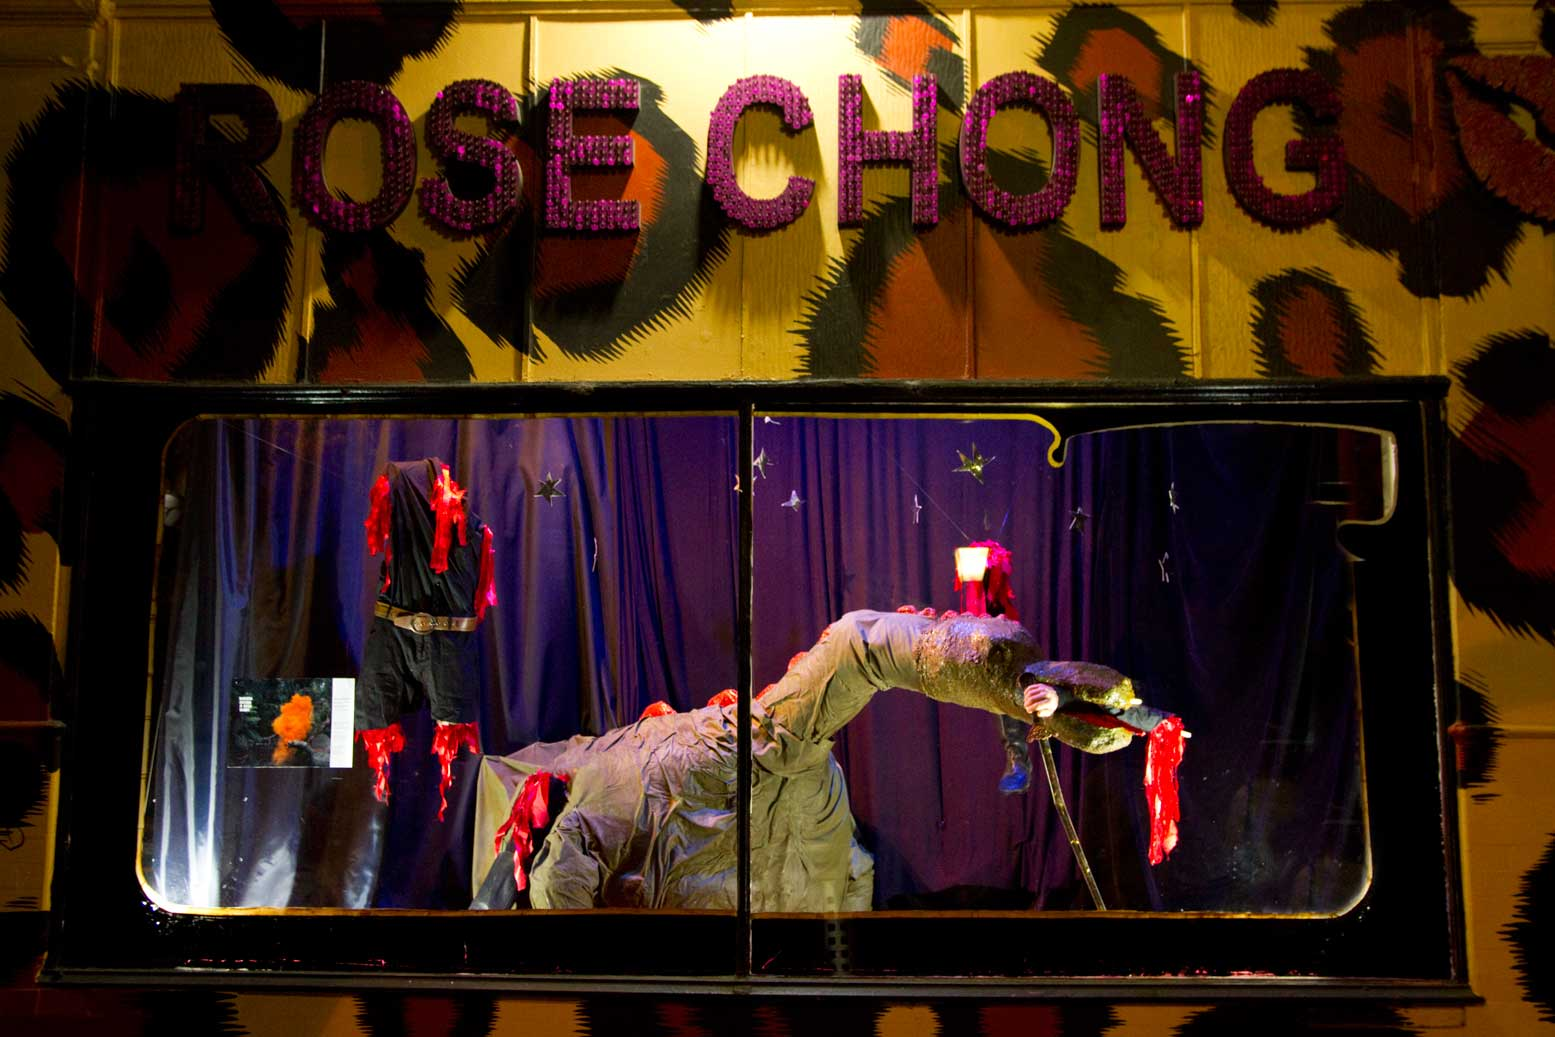 Window display at Rose Chongs Costumiers containing our creation Boris the dragon for the -x ∞ Video